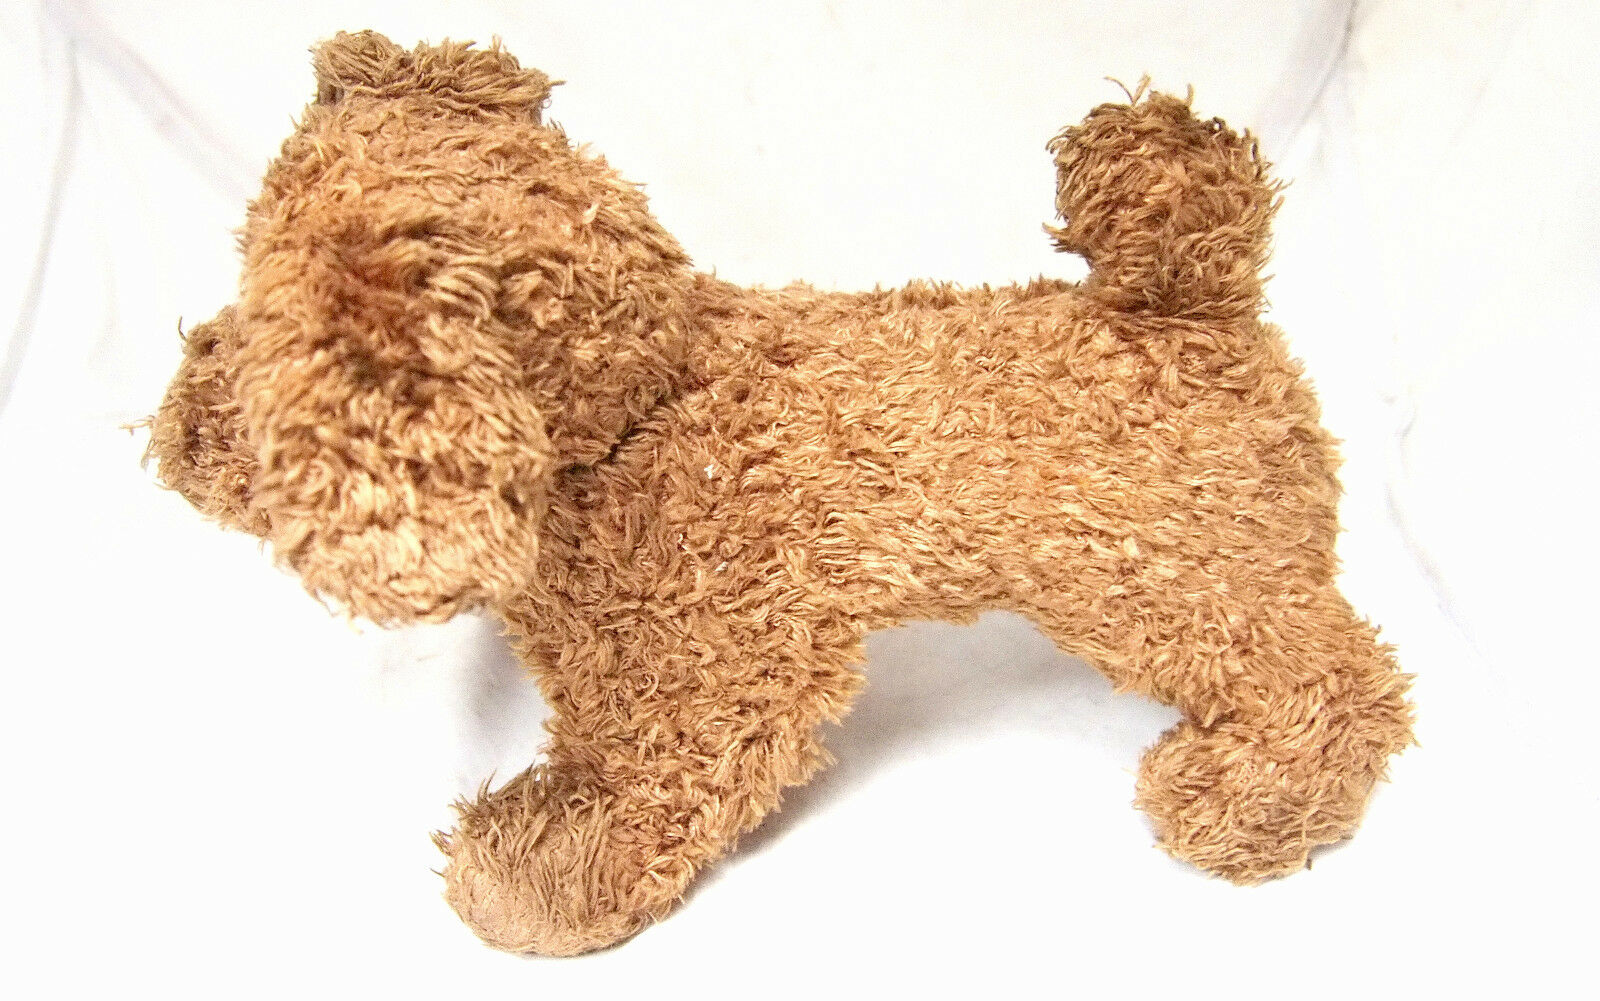 Very Very Very Rare Antique Stuffed Dog Puppy Toy 22x12x17 cm collectible aadcef